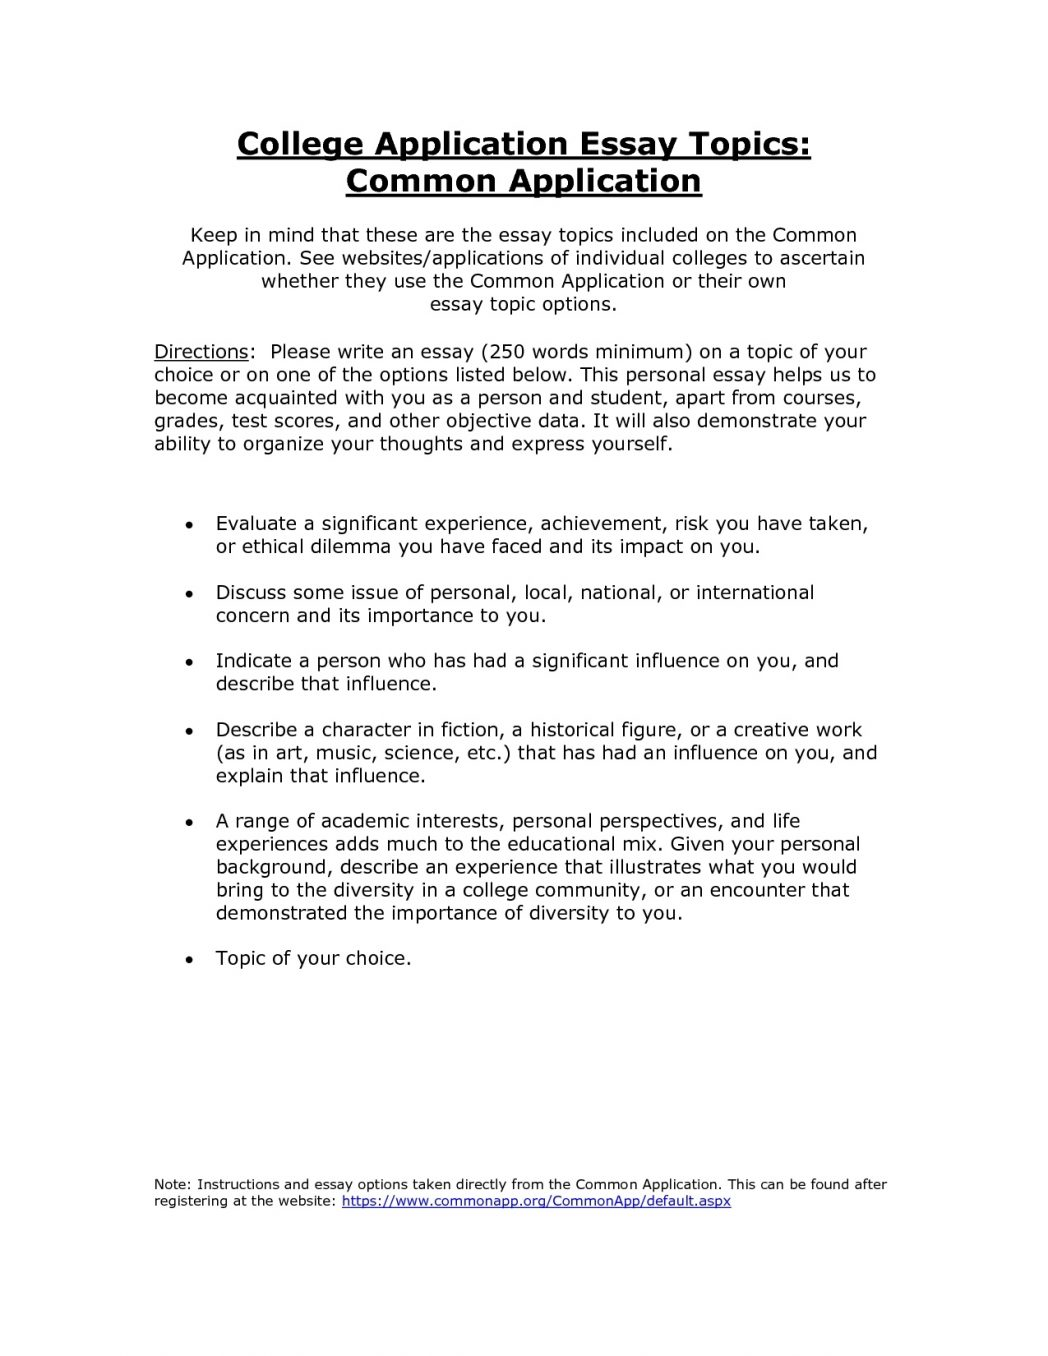 010 Common Application Essay Format Revive210618 Com College Examples Commonapp Ecza Solinf Co Texas Essayss Admission Topics Length 1048x1356 Example App Unusual Prompt 1 3 4 Full